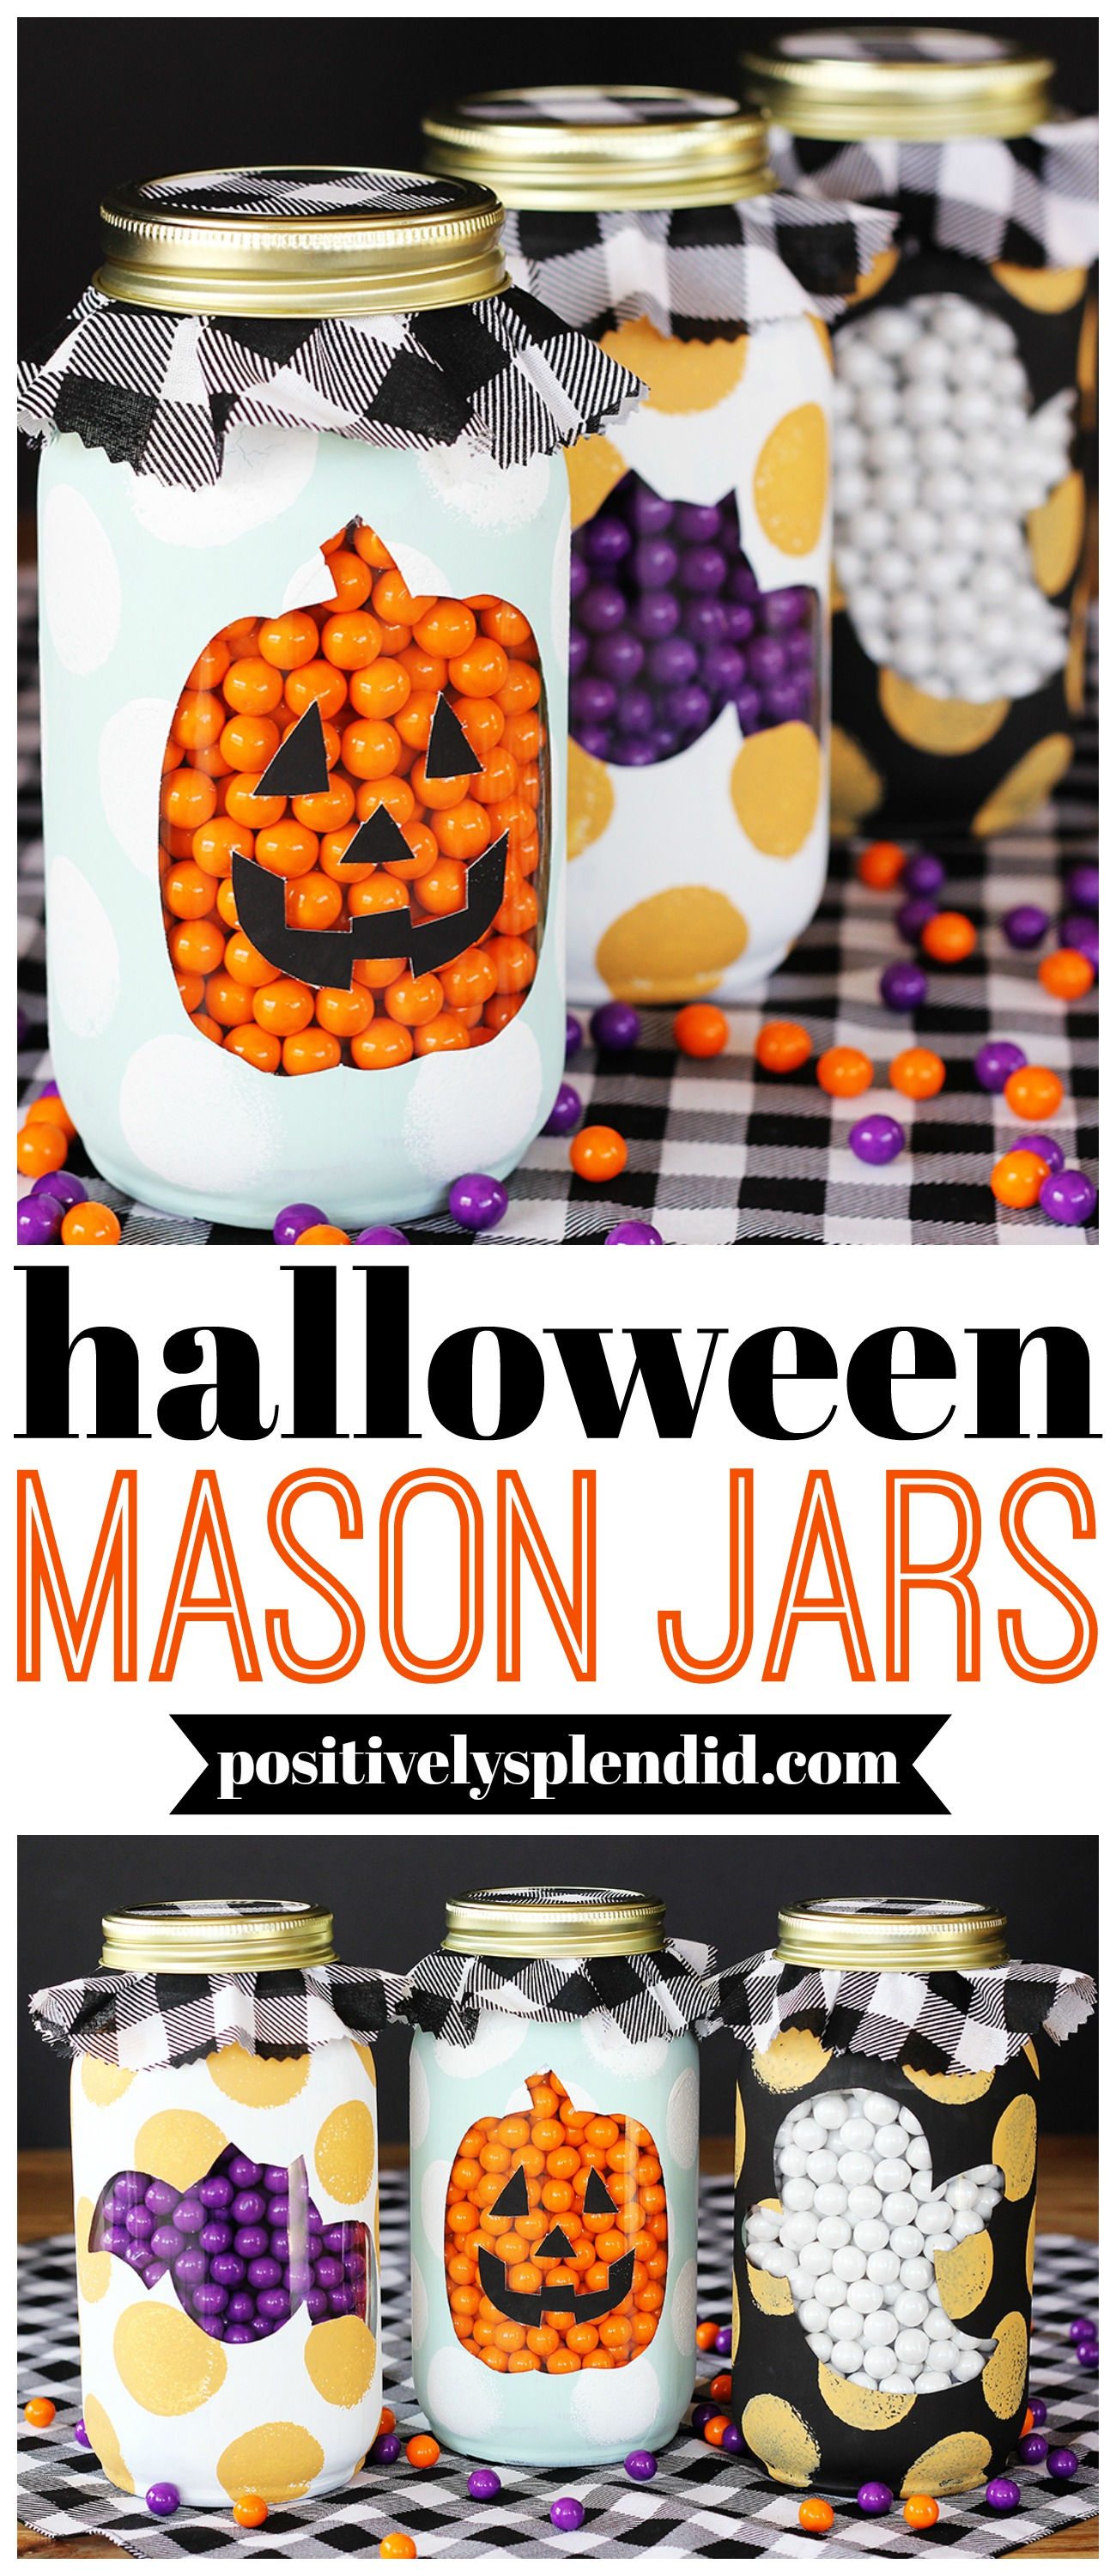 Painted Halloween Mason Jar Craft Idea